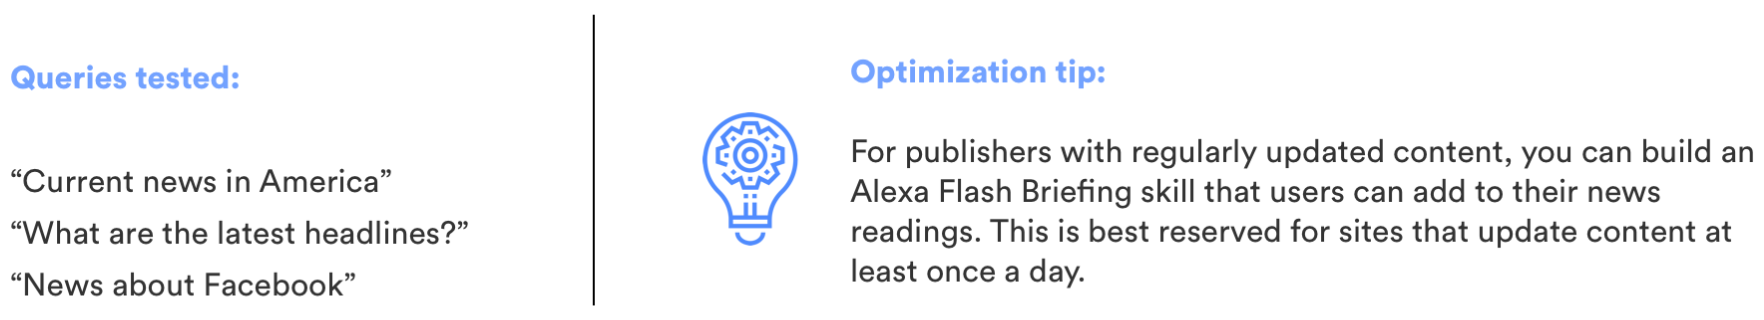 Voice search optimization tip: publishers with regularly updated content can build an Alexa Flash Briefing skill that users can add to their news readings This is best reserved for sites that update content at least once a day.